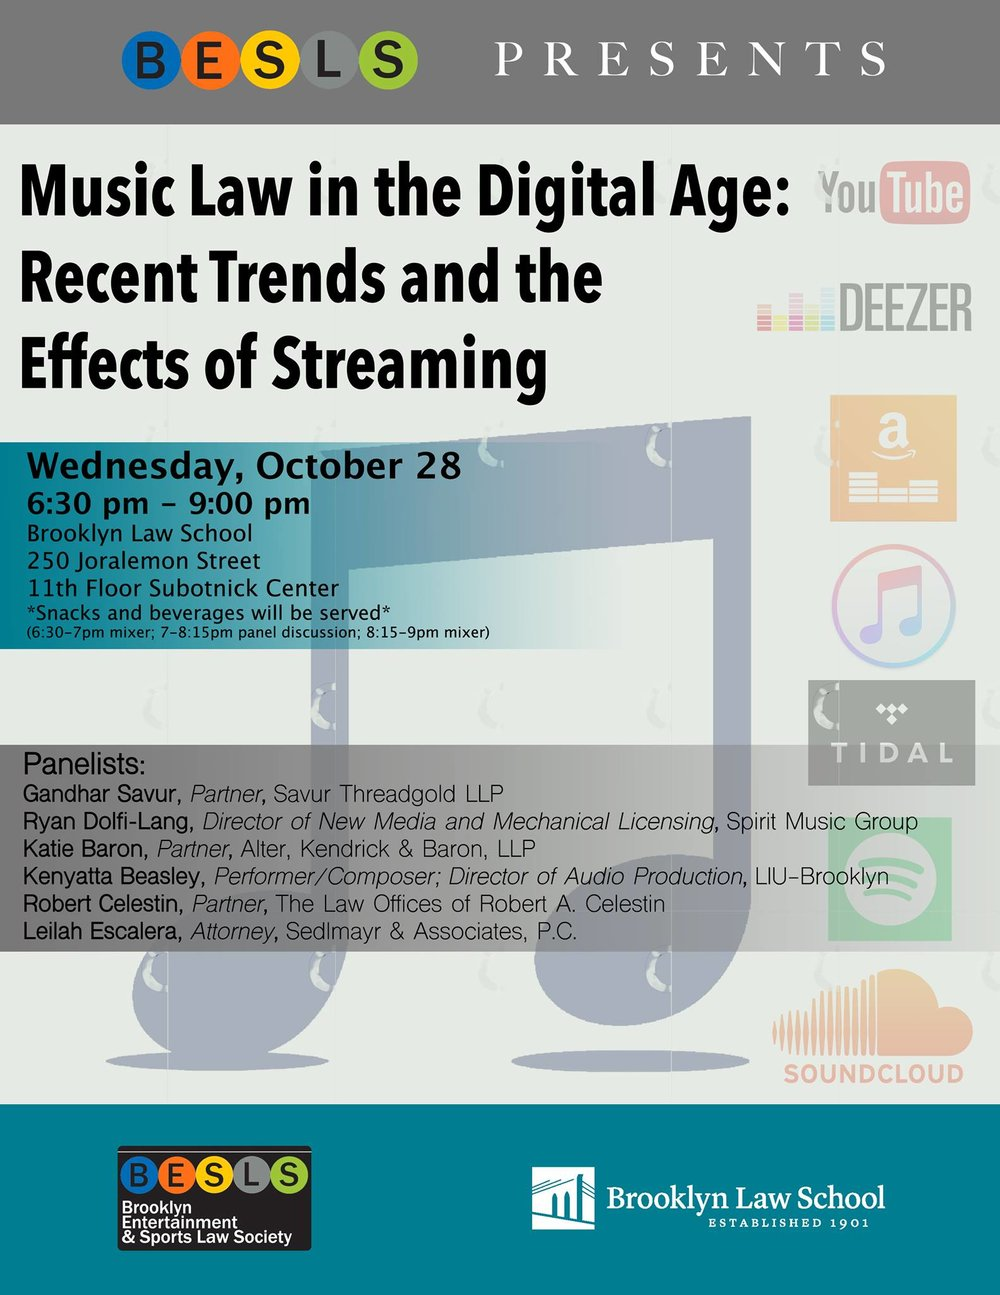 Music Law in the Digital Age: Recent Trends and the Effects